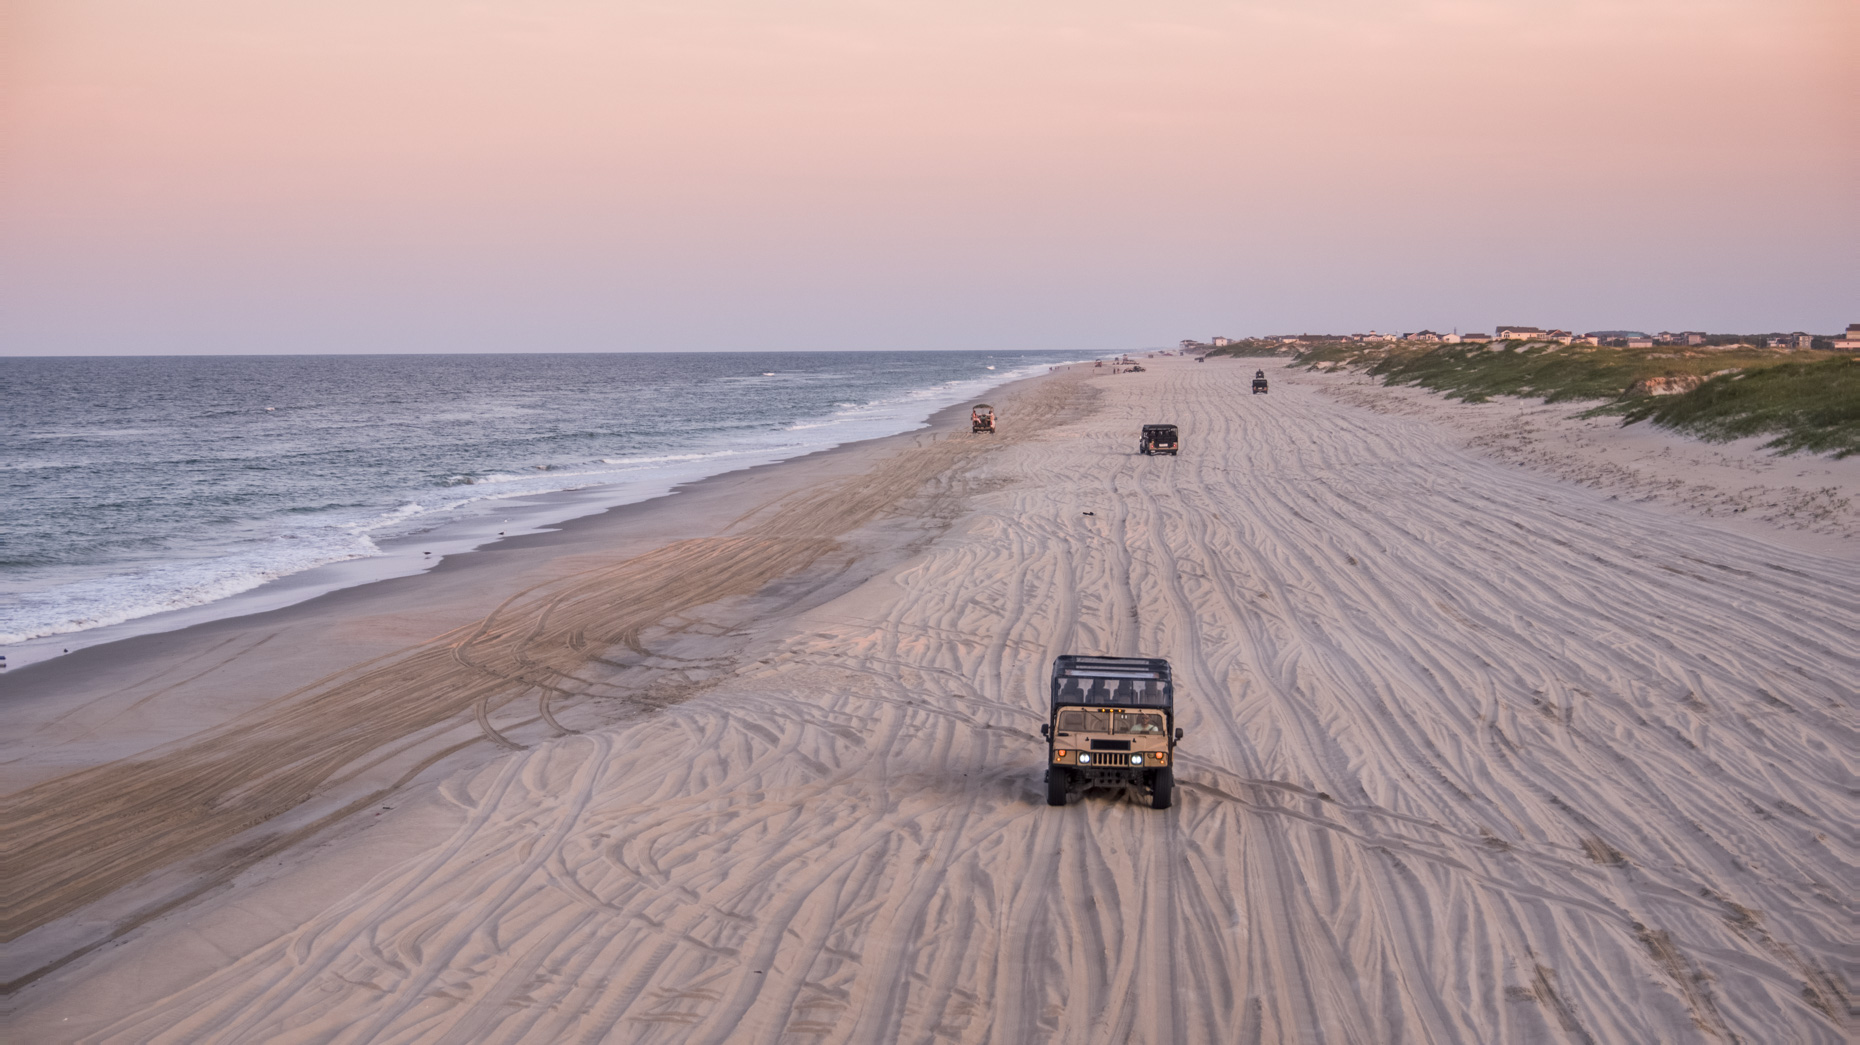 A Humvee driving down the beach at sunset for Wild Horse Adventure Tour in Corolla, North Carolina